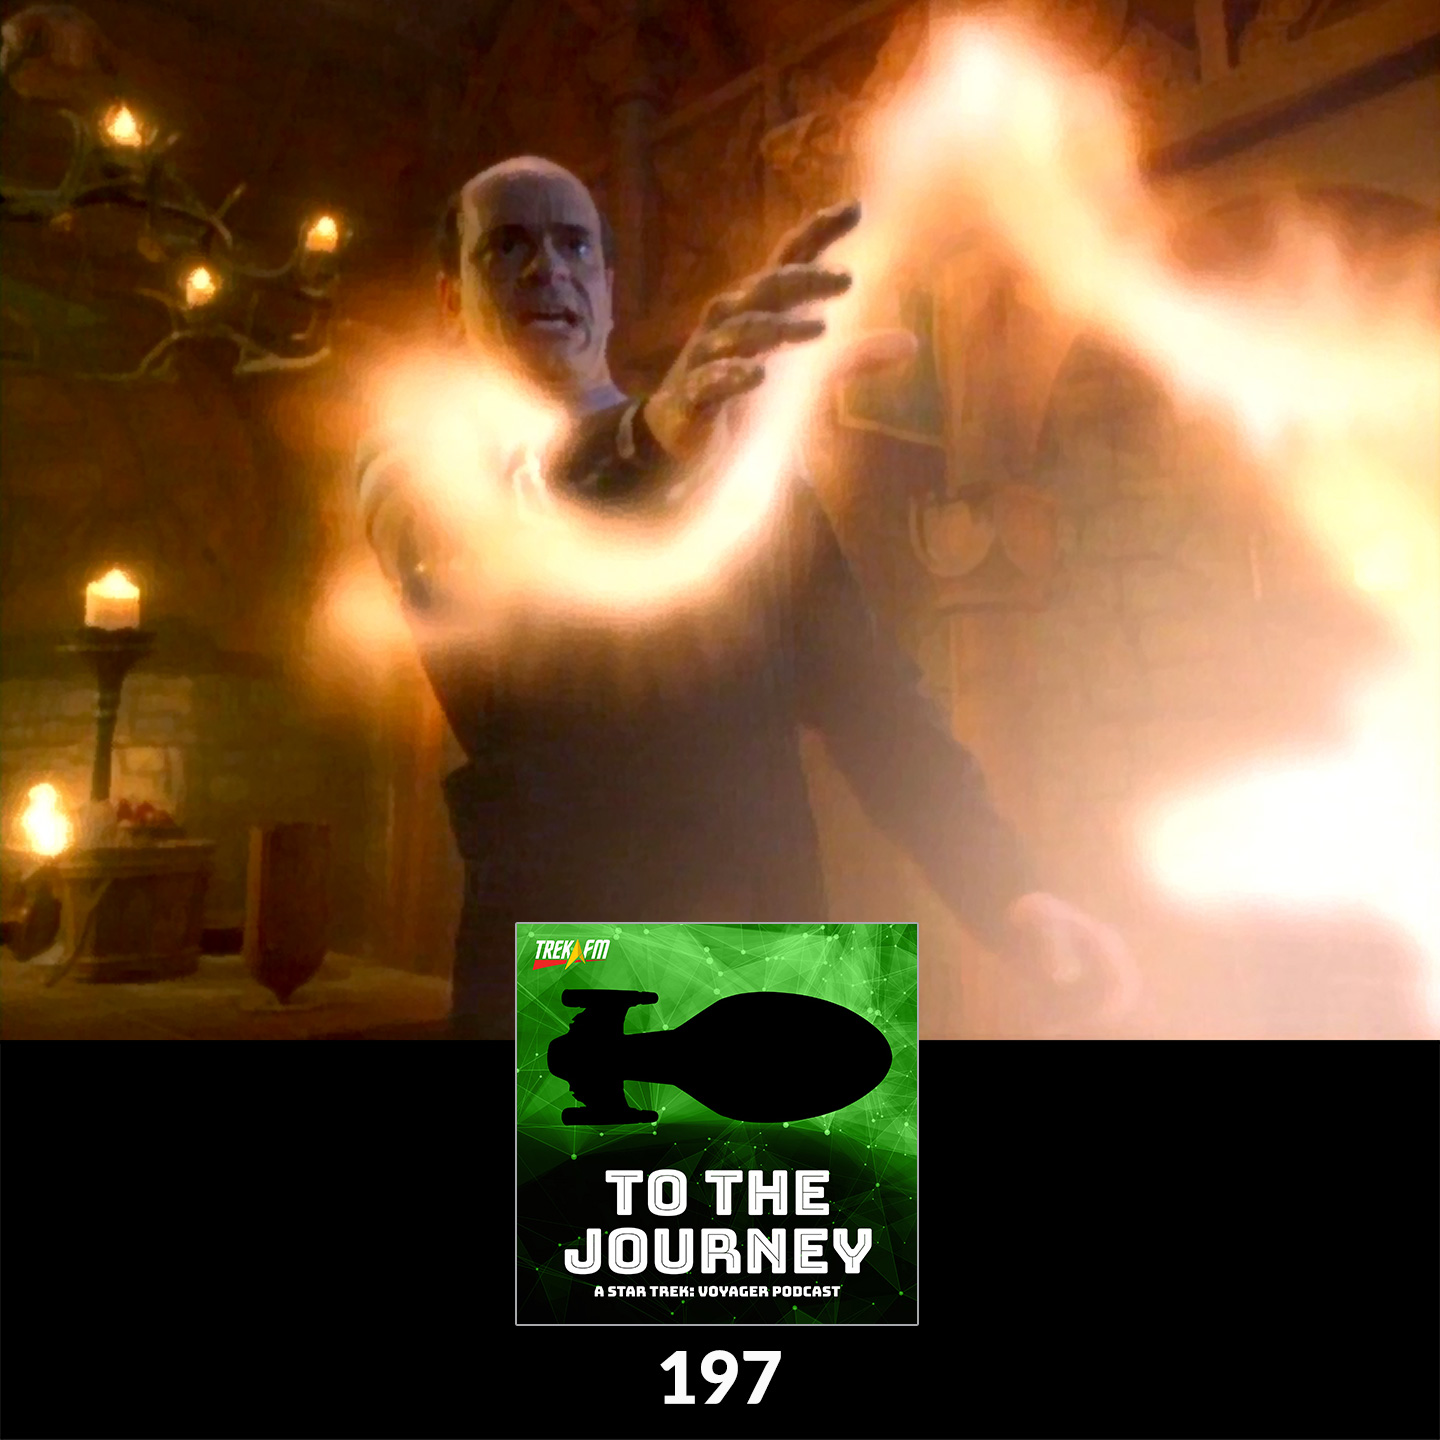 To The Journey: A Star Trek Voyager Podcast